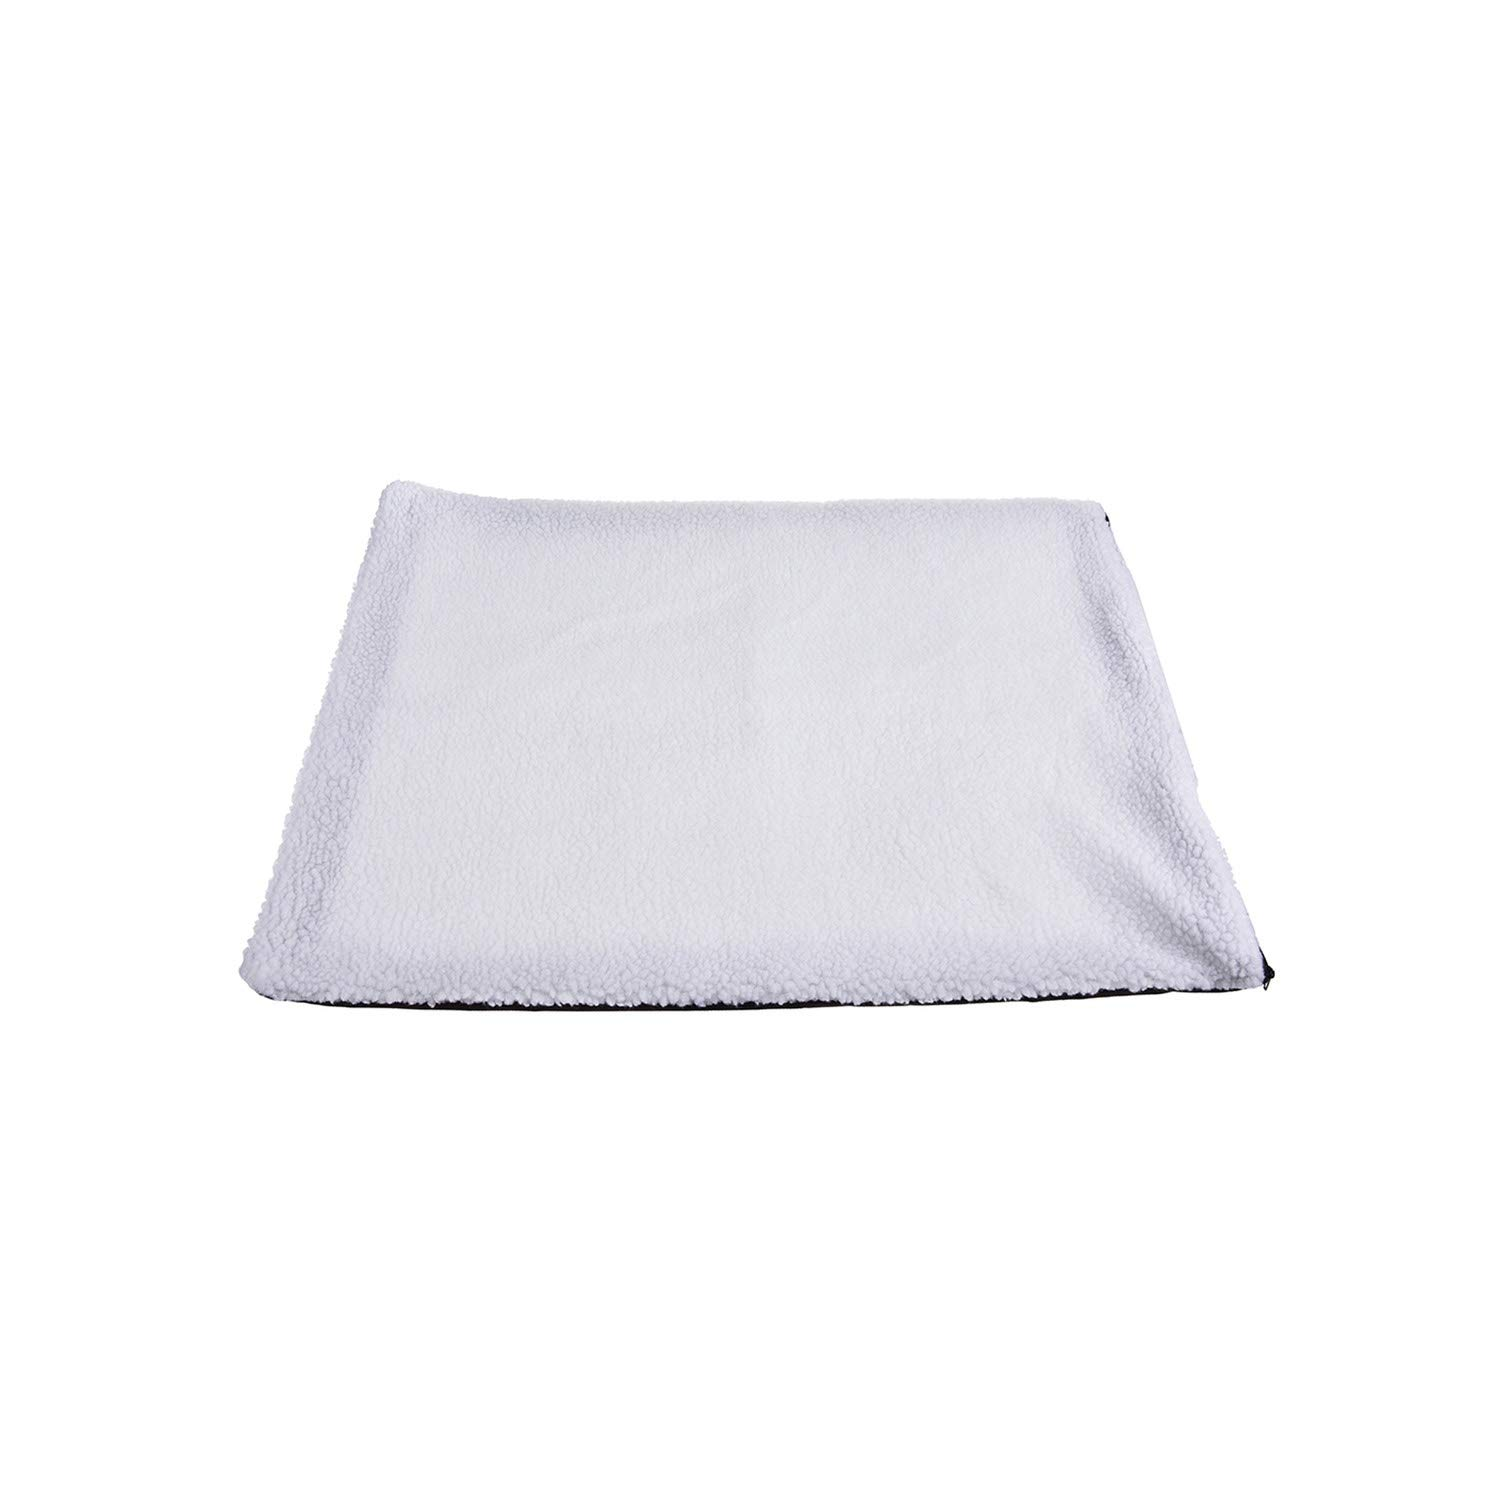 Self Heating Dog Cat Blanket Pet Bed Thermal Washable No Electric Blanket Super Soft Puppy Kitten Blanket Beds Mat,White,S